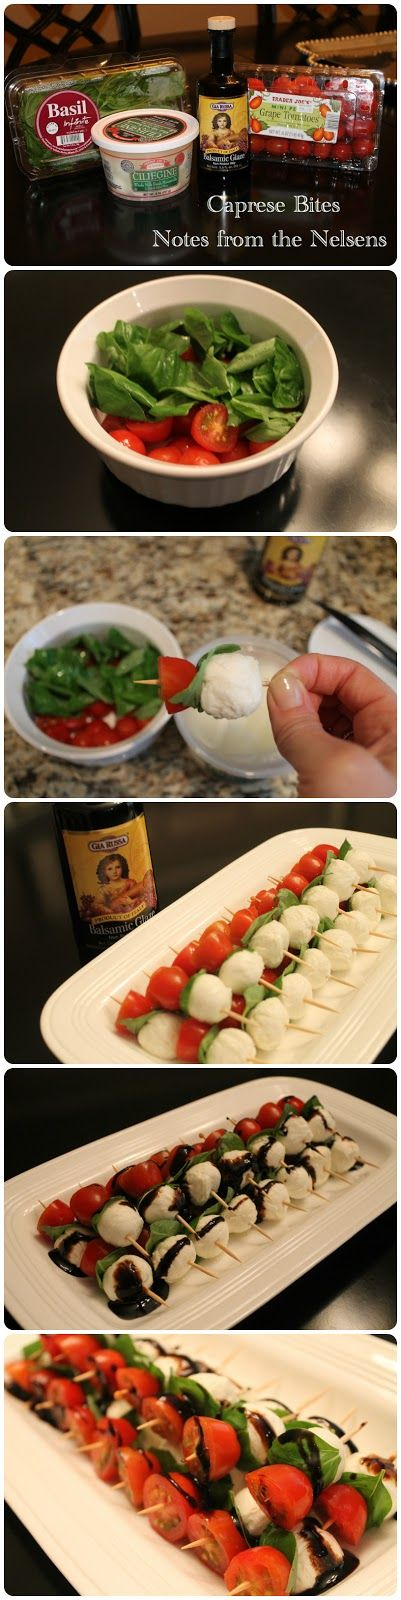 Love these delicious and healthy Caprese Bites - so flavorful and no guilt!